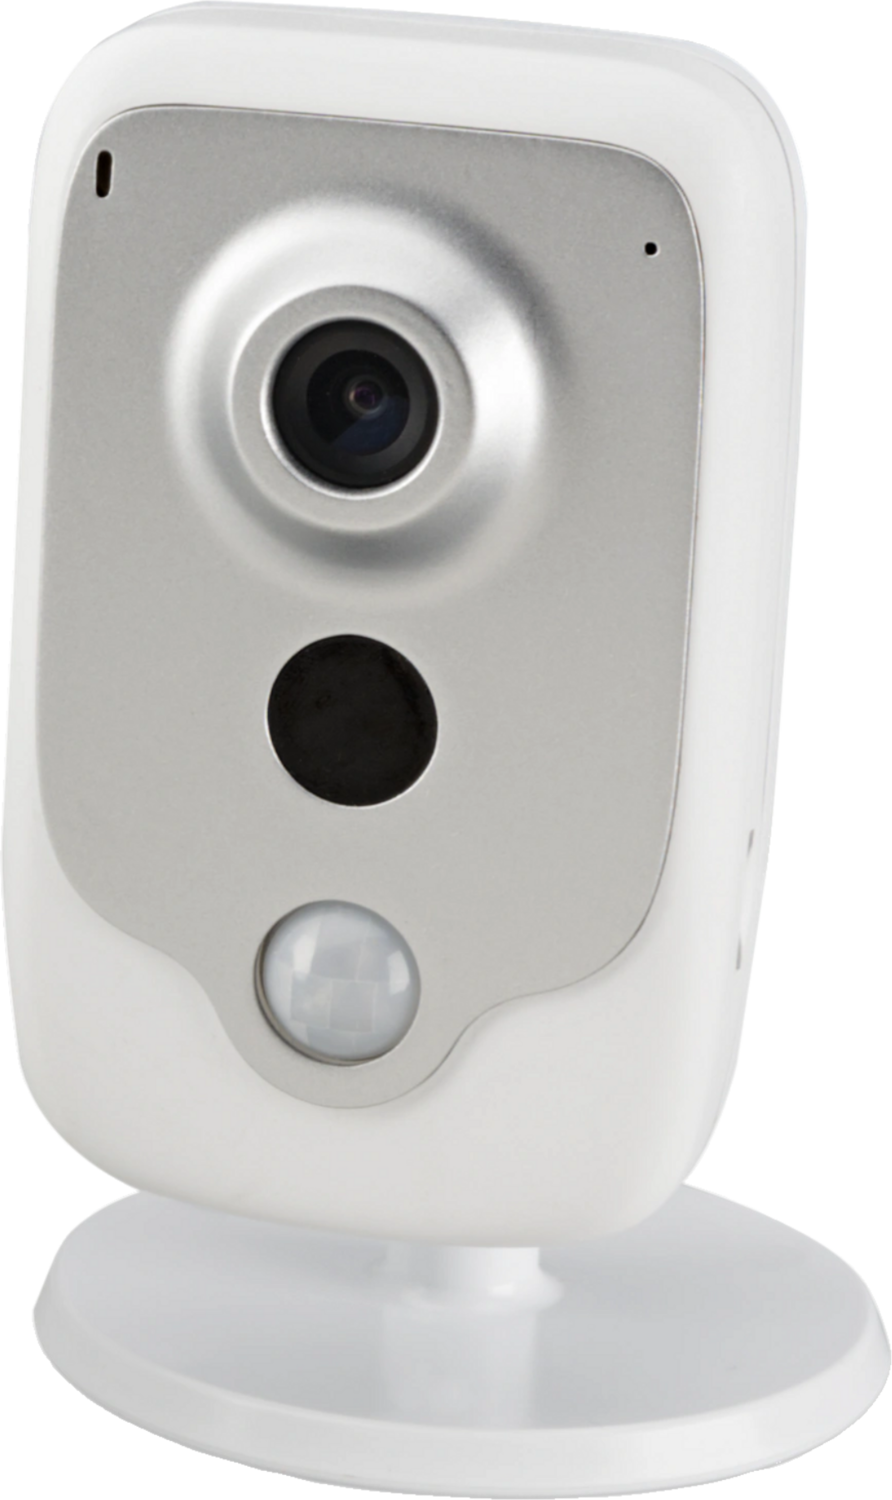 Wireless Indoor IP Camera with 2-way voice!